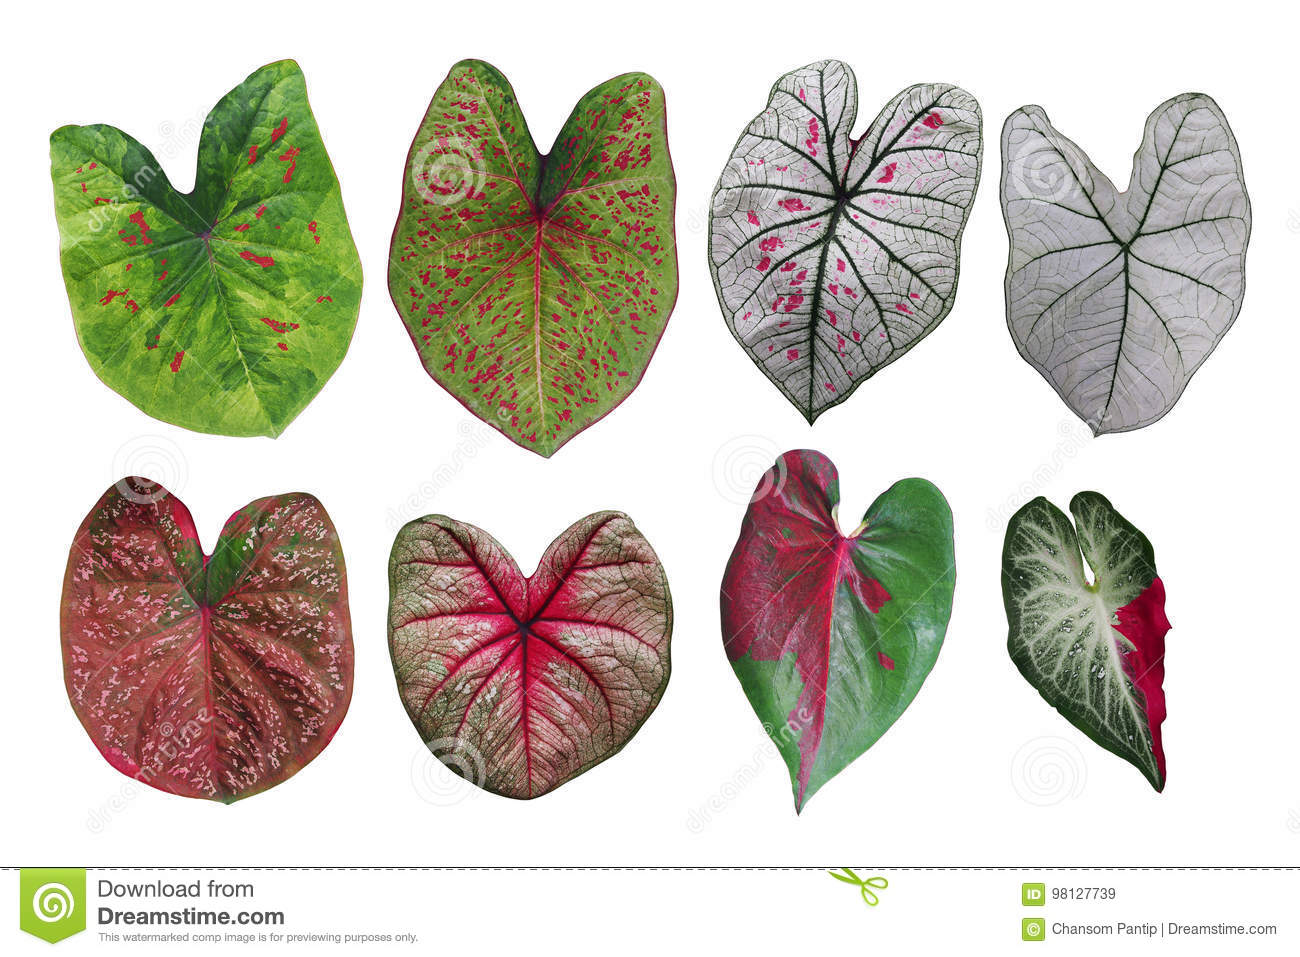 Heart shaped fancy leafed Caladium variegated collection, the tr